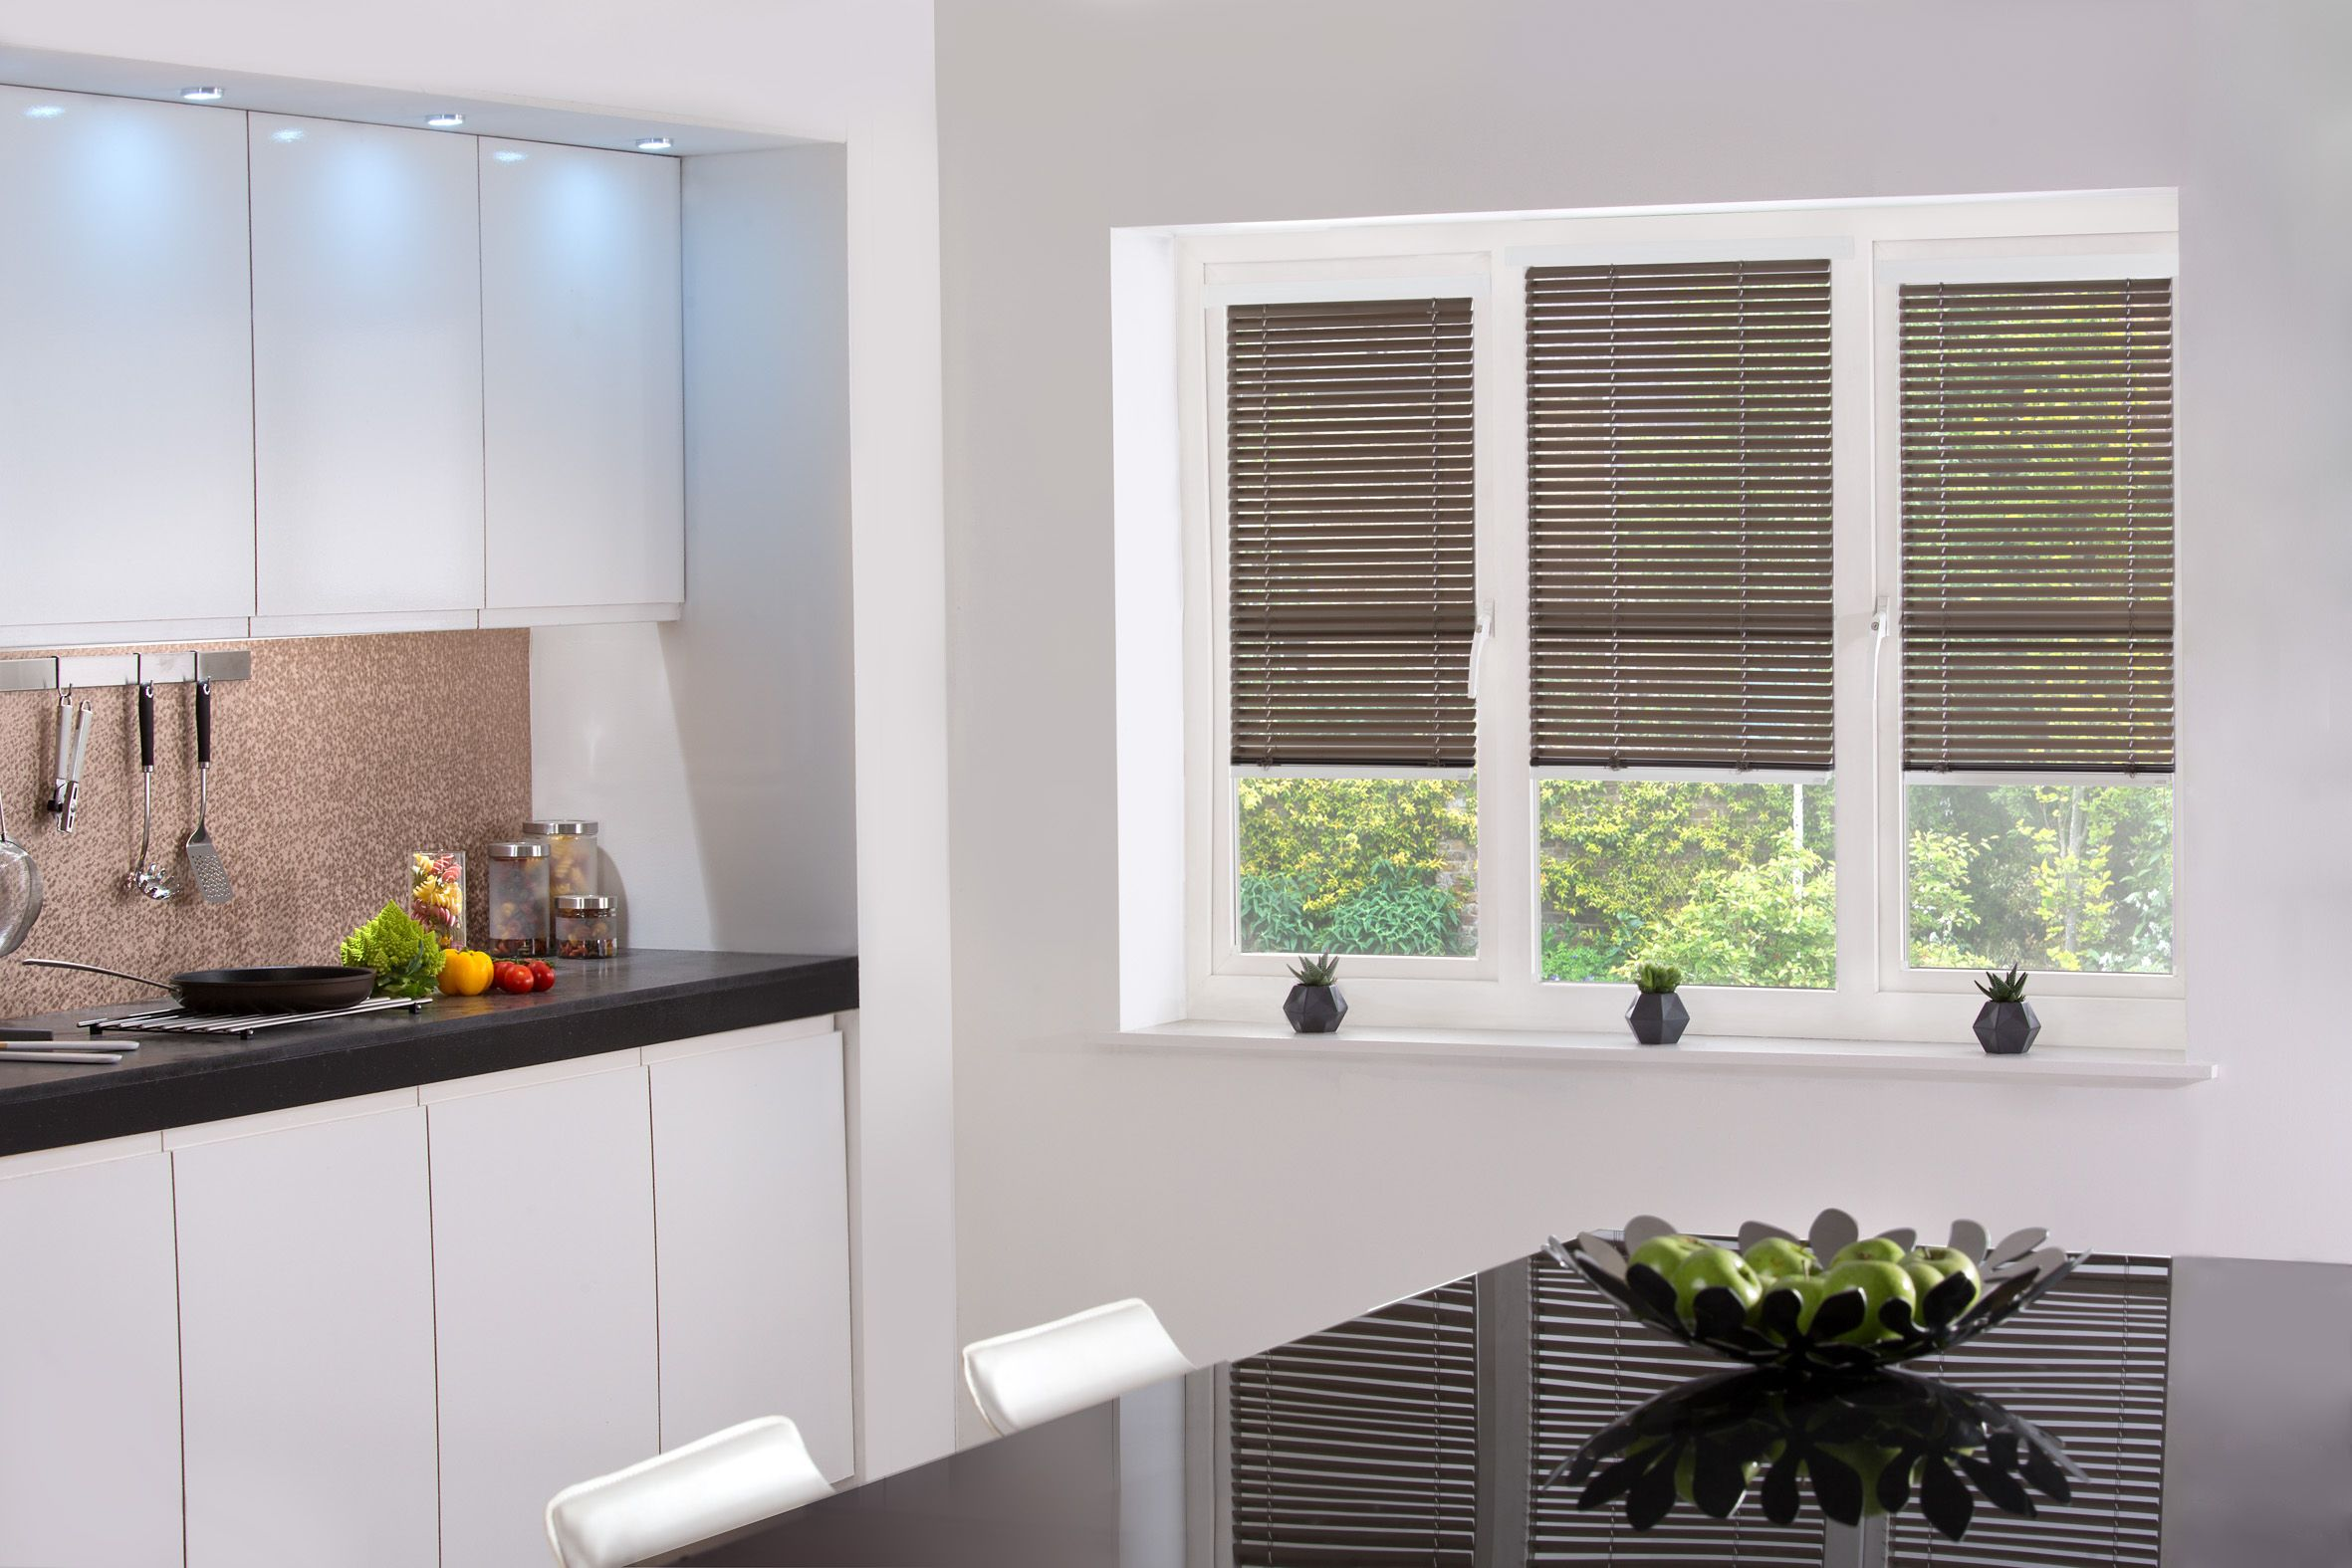 Best window blinds for kitchens. Aluminium venetian blinds ... on exterior window design, exterior window products, exterior stone privacy, exterior window film, exterior window terms, exterior window shades, exterior window security, exterior privacy curtains, exterior window glossary,